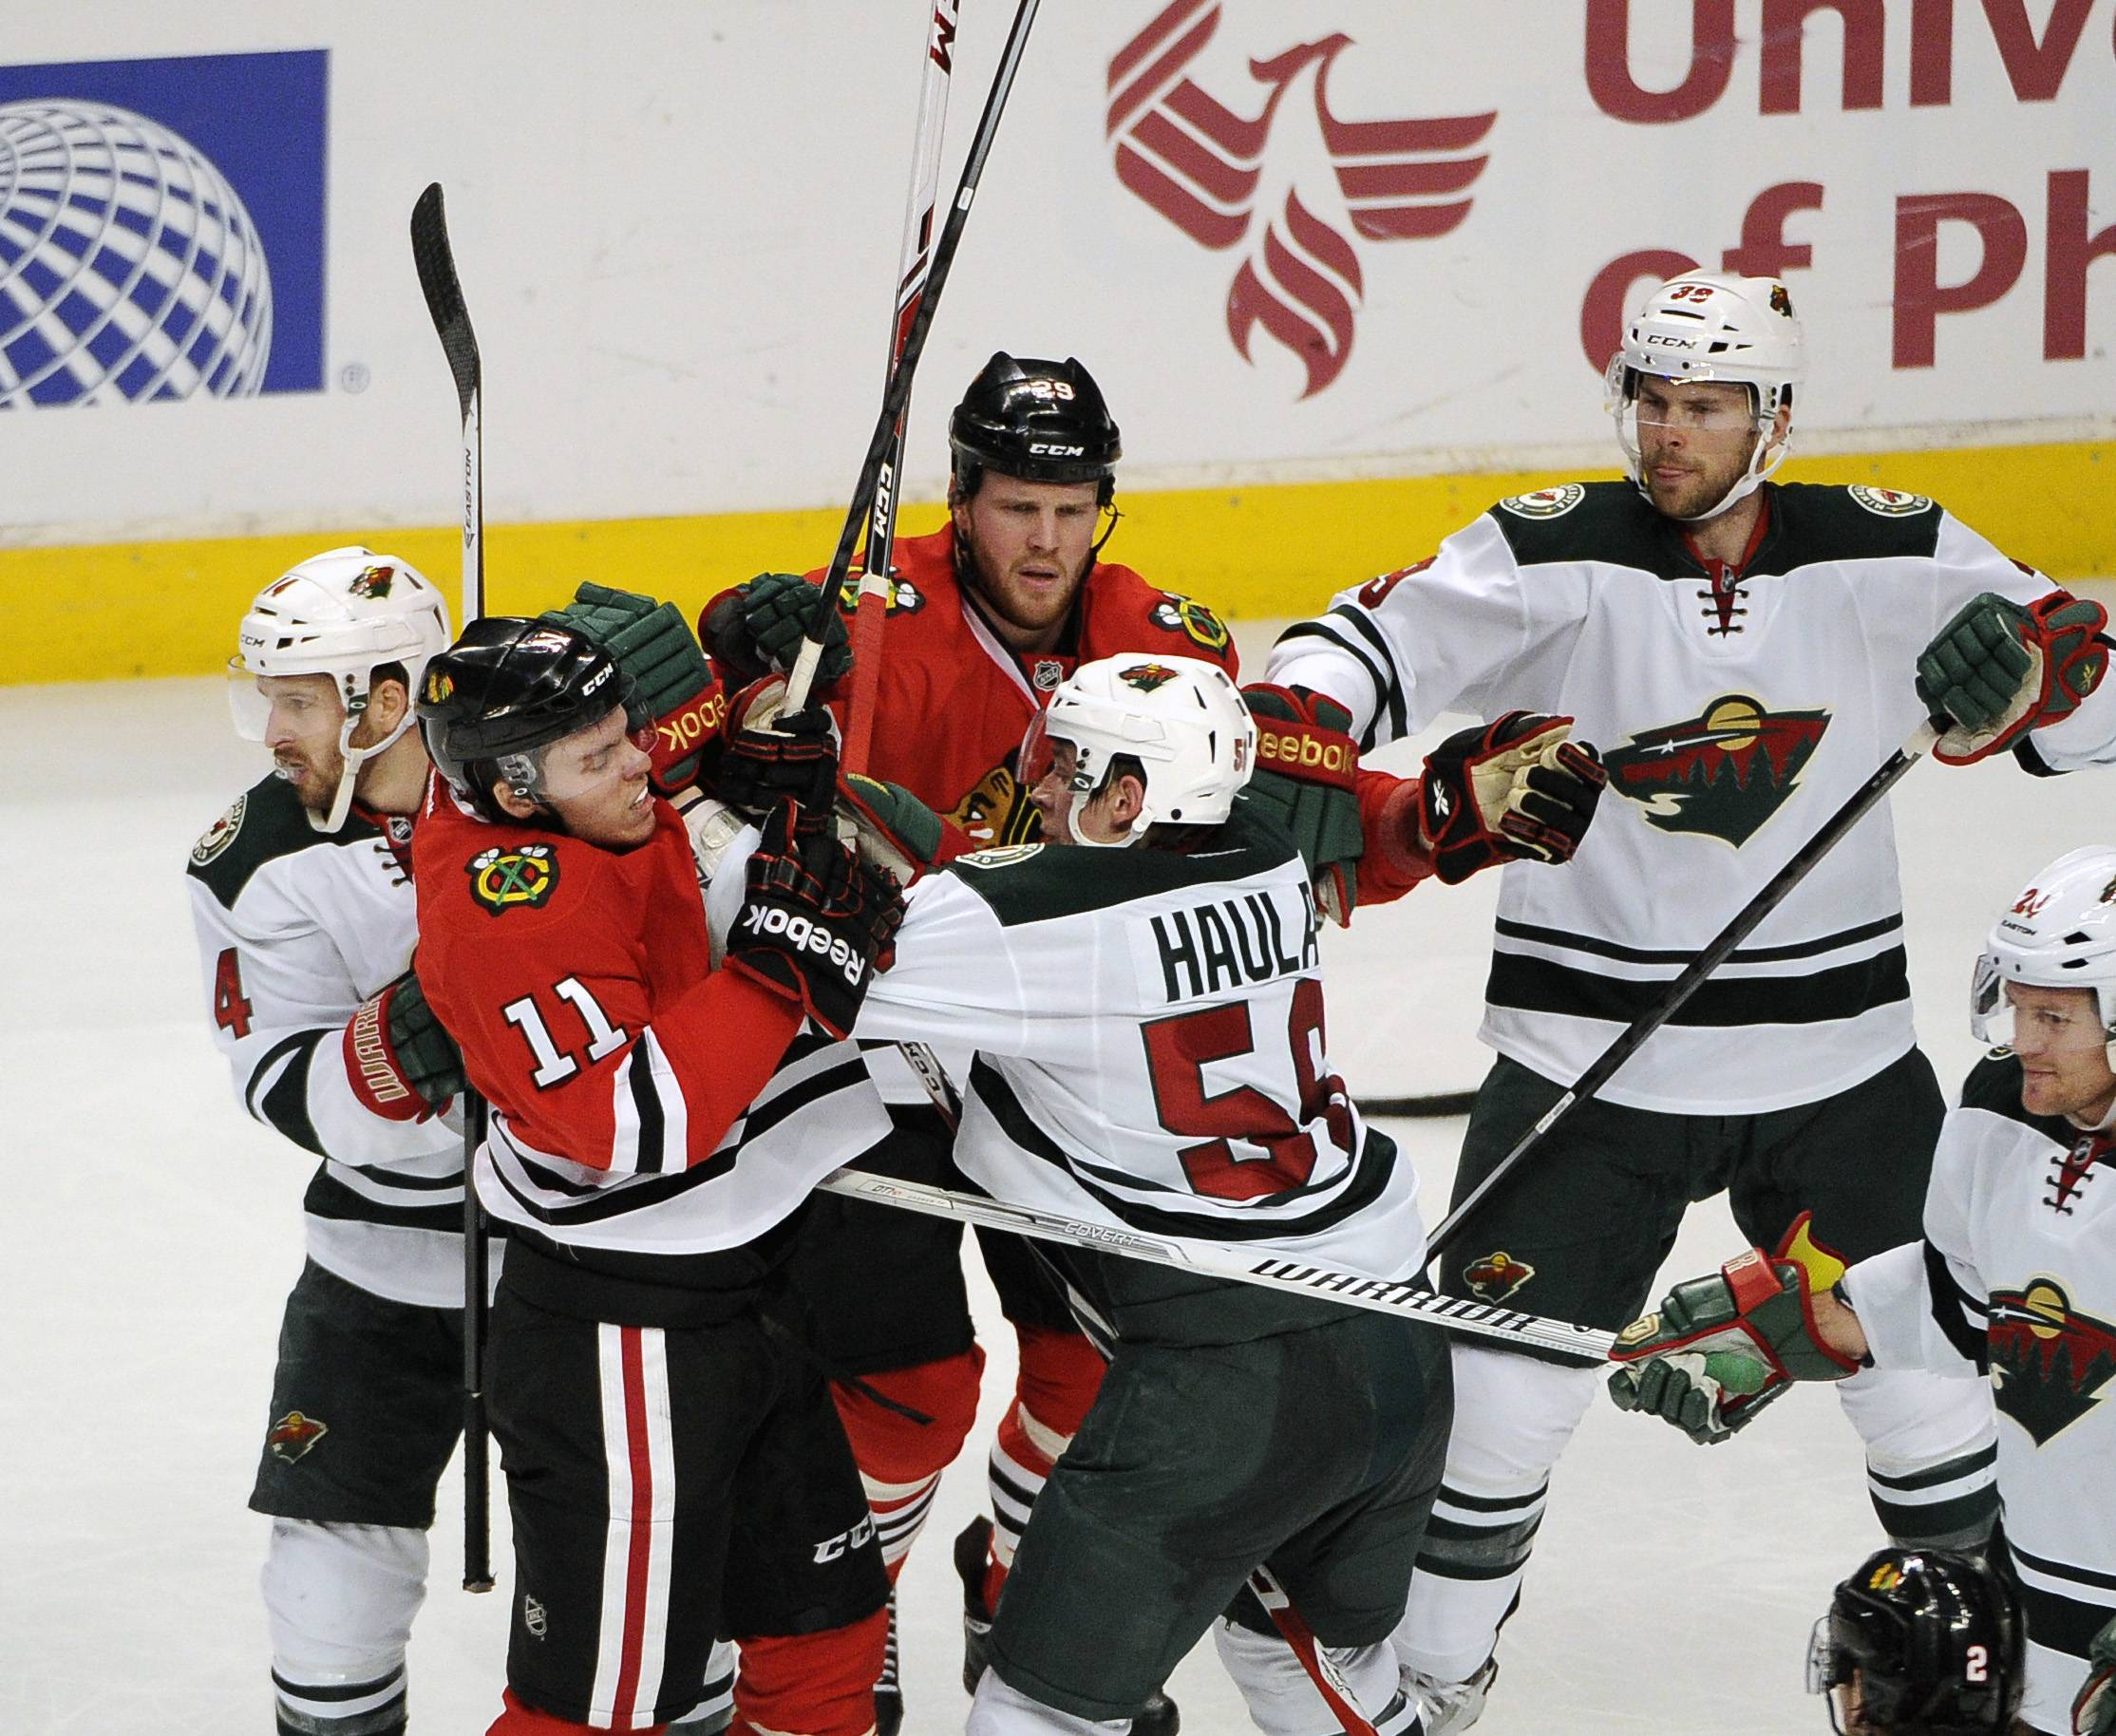 Blackhawks' Jeremy Morin (11) and Minnesota Wild's Erik Haula (56) get into an altercation in the second period of an NHL hockey game in Chicago, Thursday, April 3, 2014.